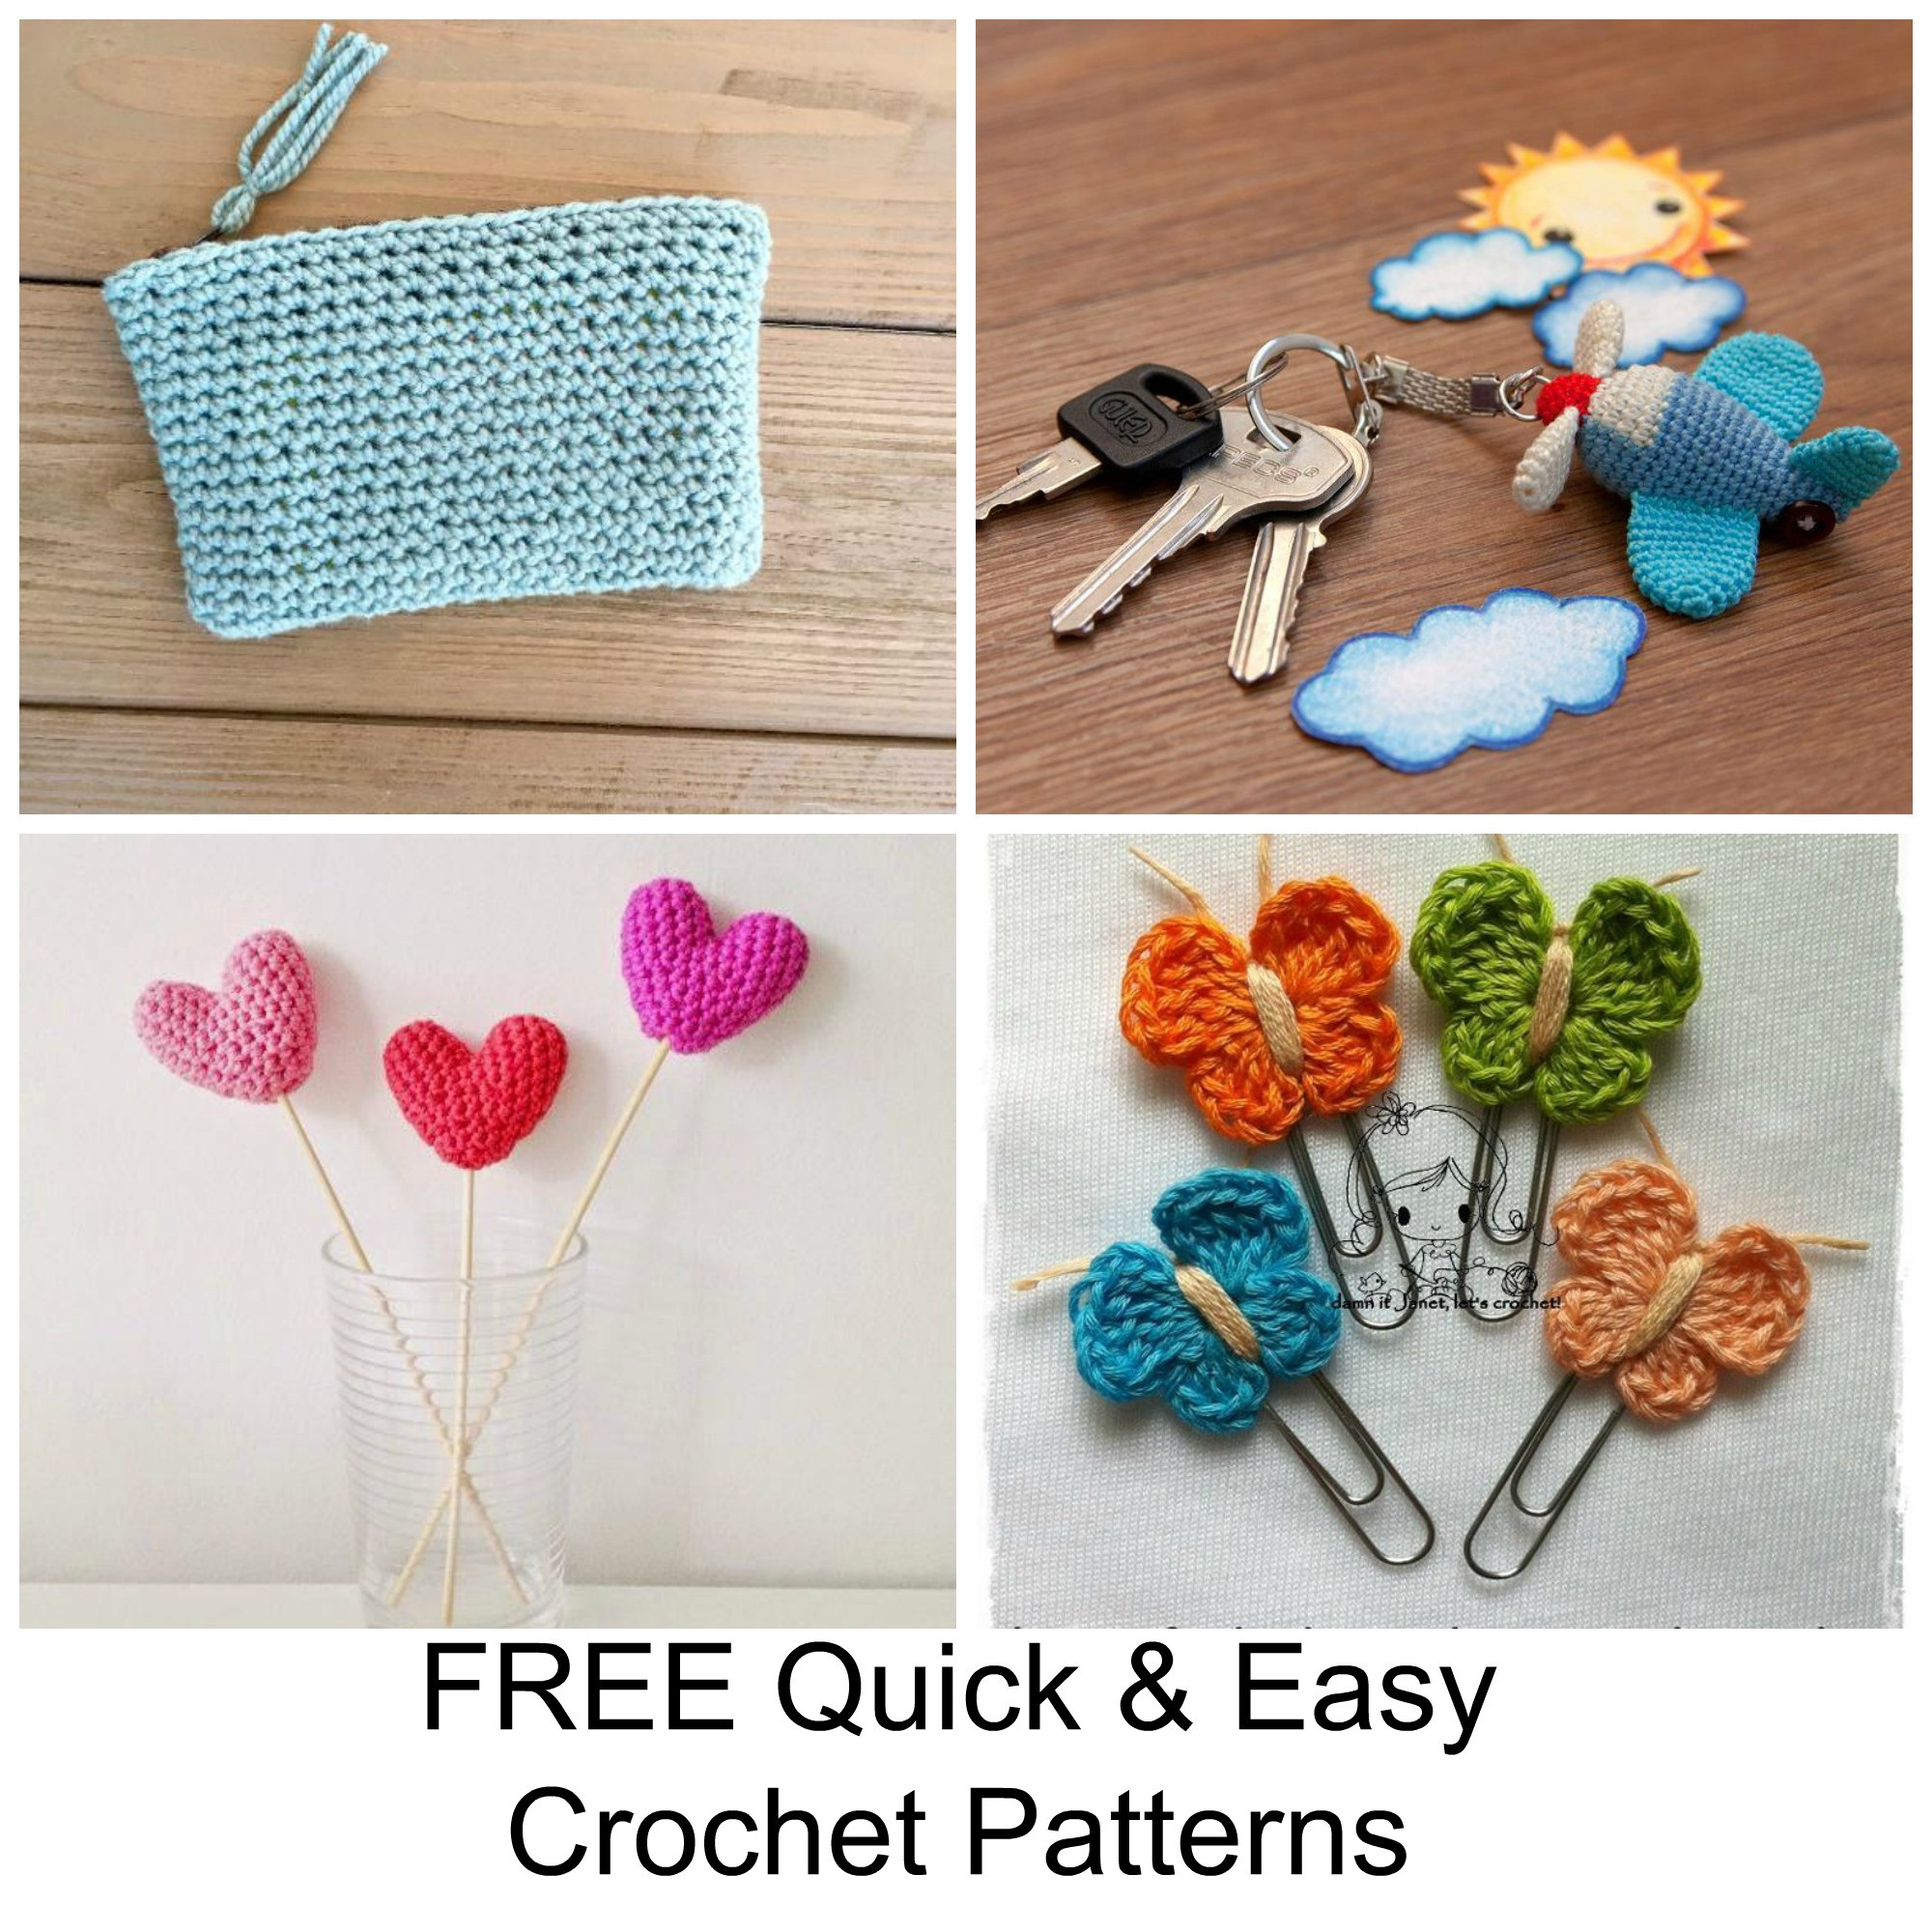 Unique 13 Free Quick and Easy Crochet Patterns Easy Crochet Projects Of Awesome 49 Pics Easy Crochet Projects